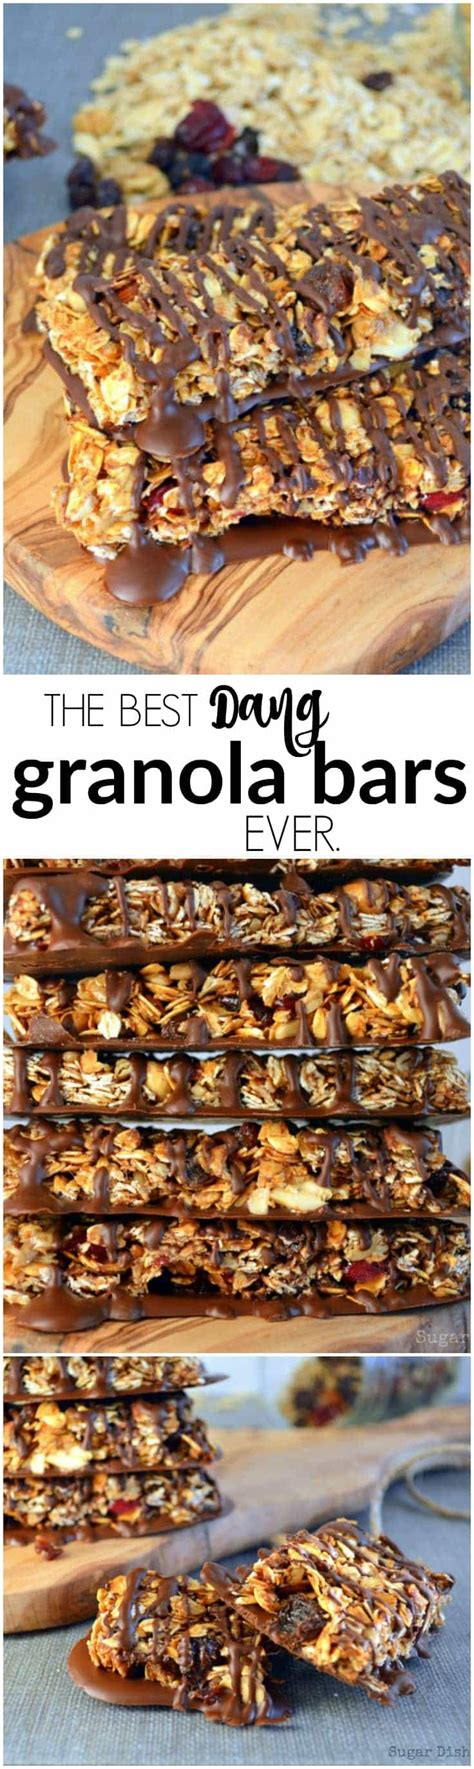 best granola bars 23 decadent breakfast bar recipes to keep you